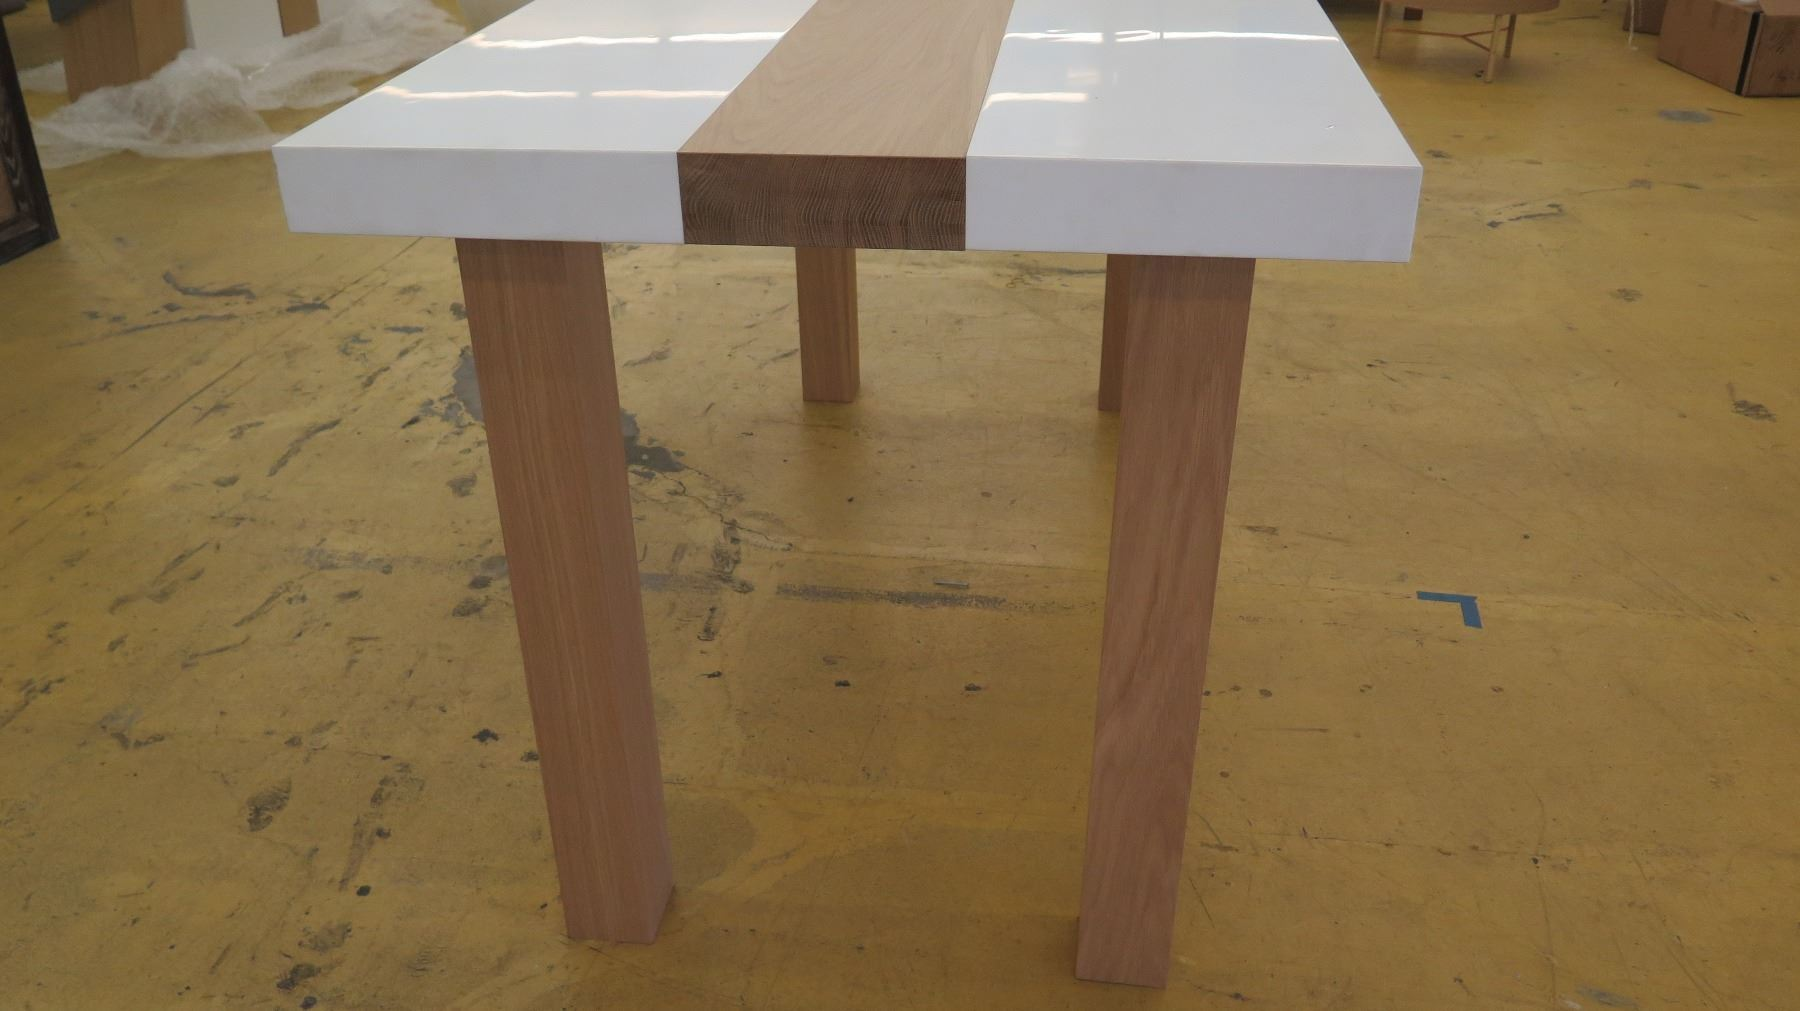 ... Image 5 : Tall Parsons Table   Natural Wood Legs, White Top, 6ft X ...